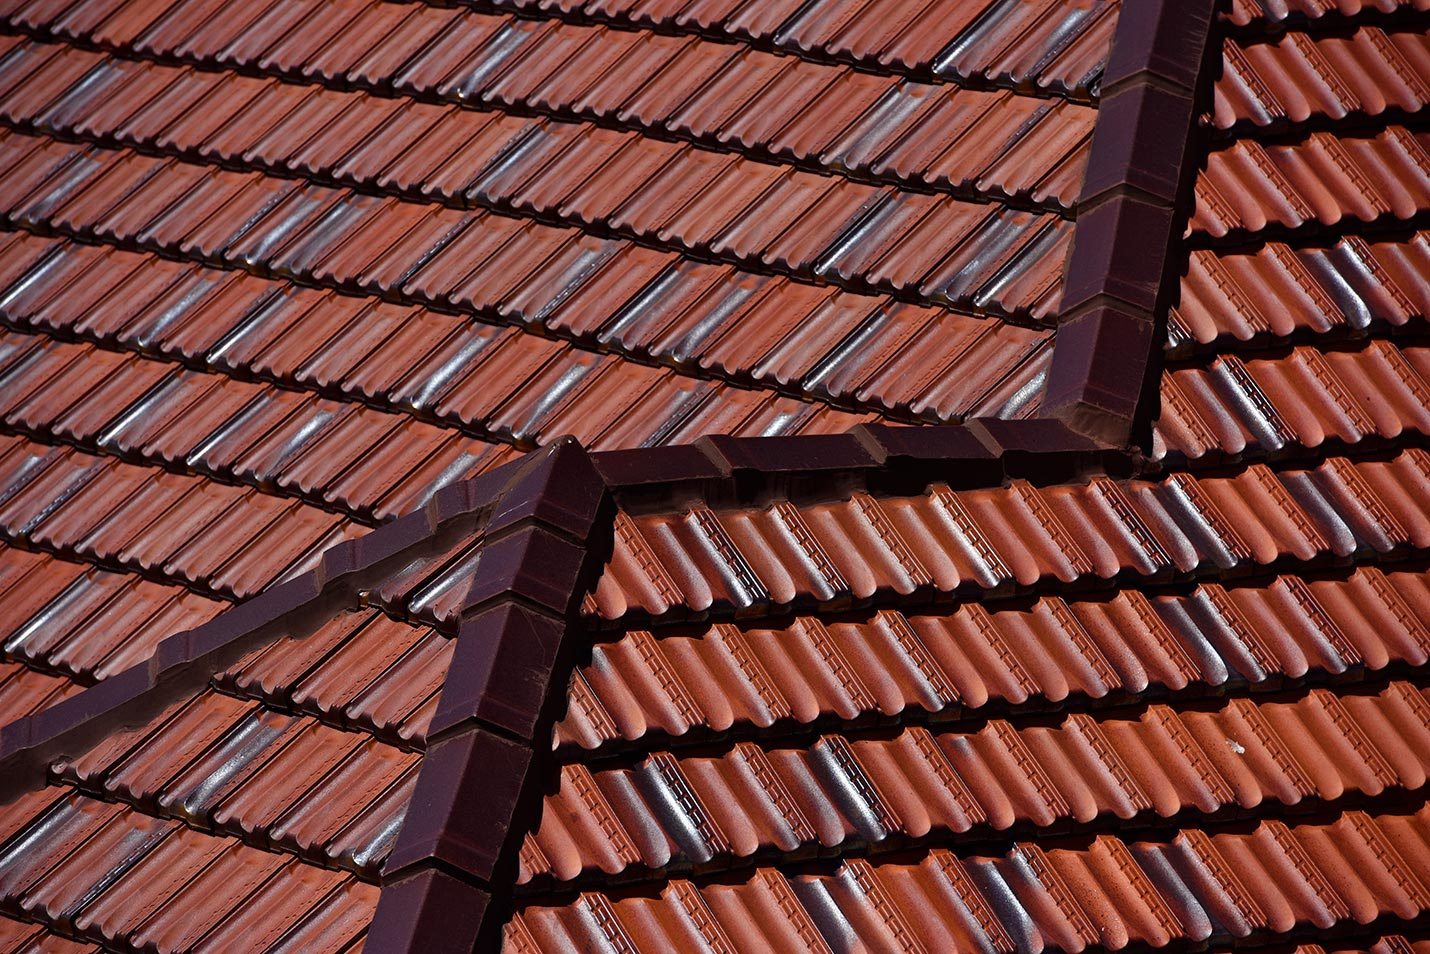 Close up view of the tile re-roof featuring Monier Terracotta tiles - Marseille in Aurora Gold.